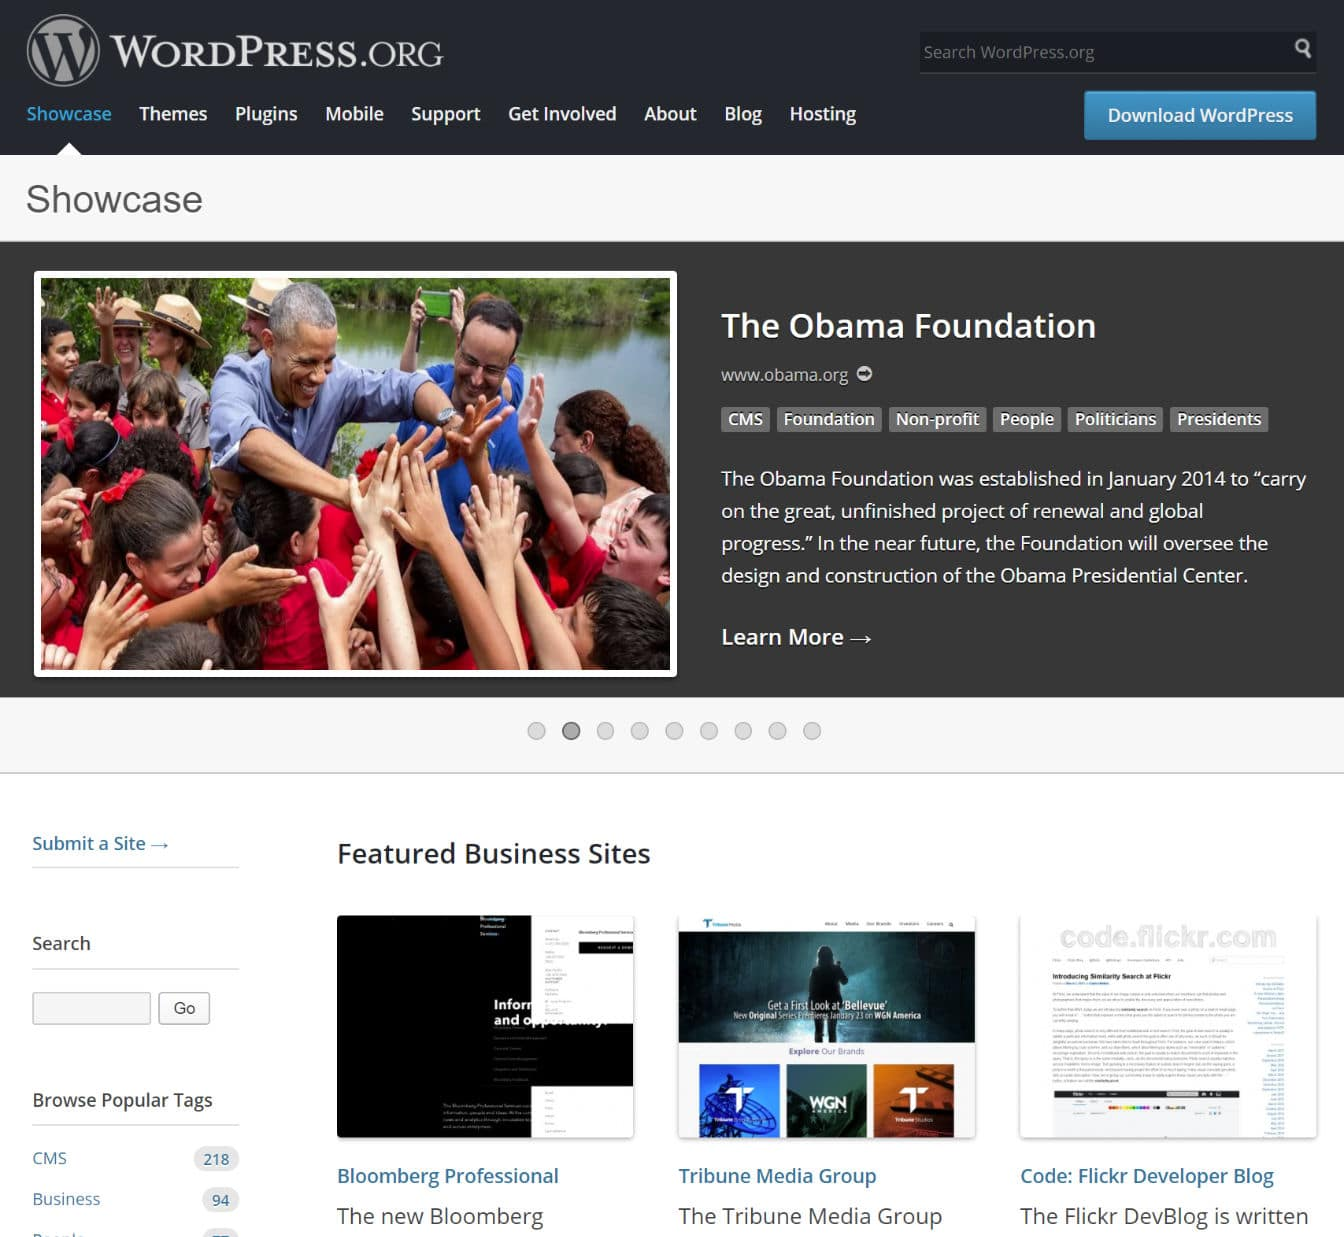 WordPress Showcases